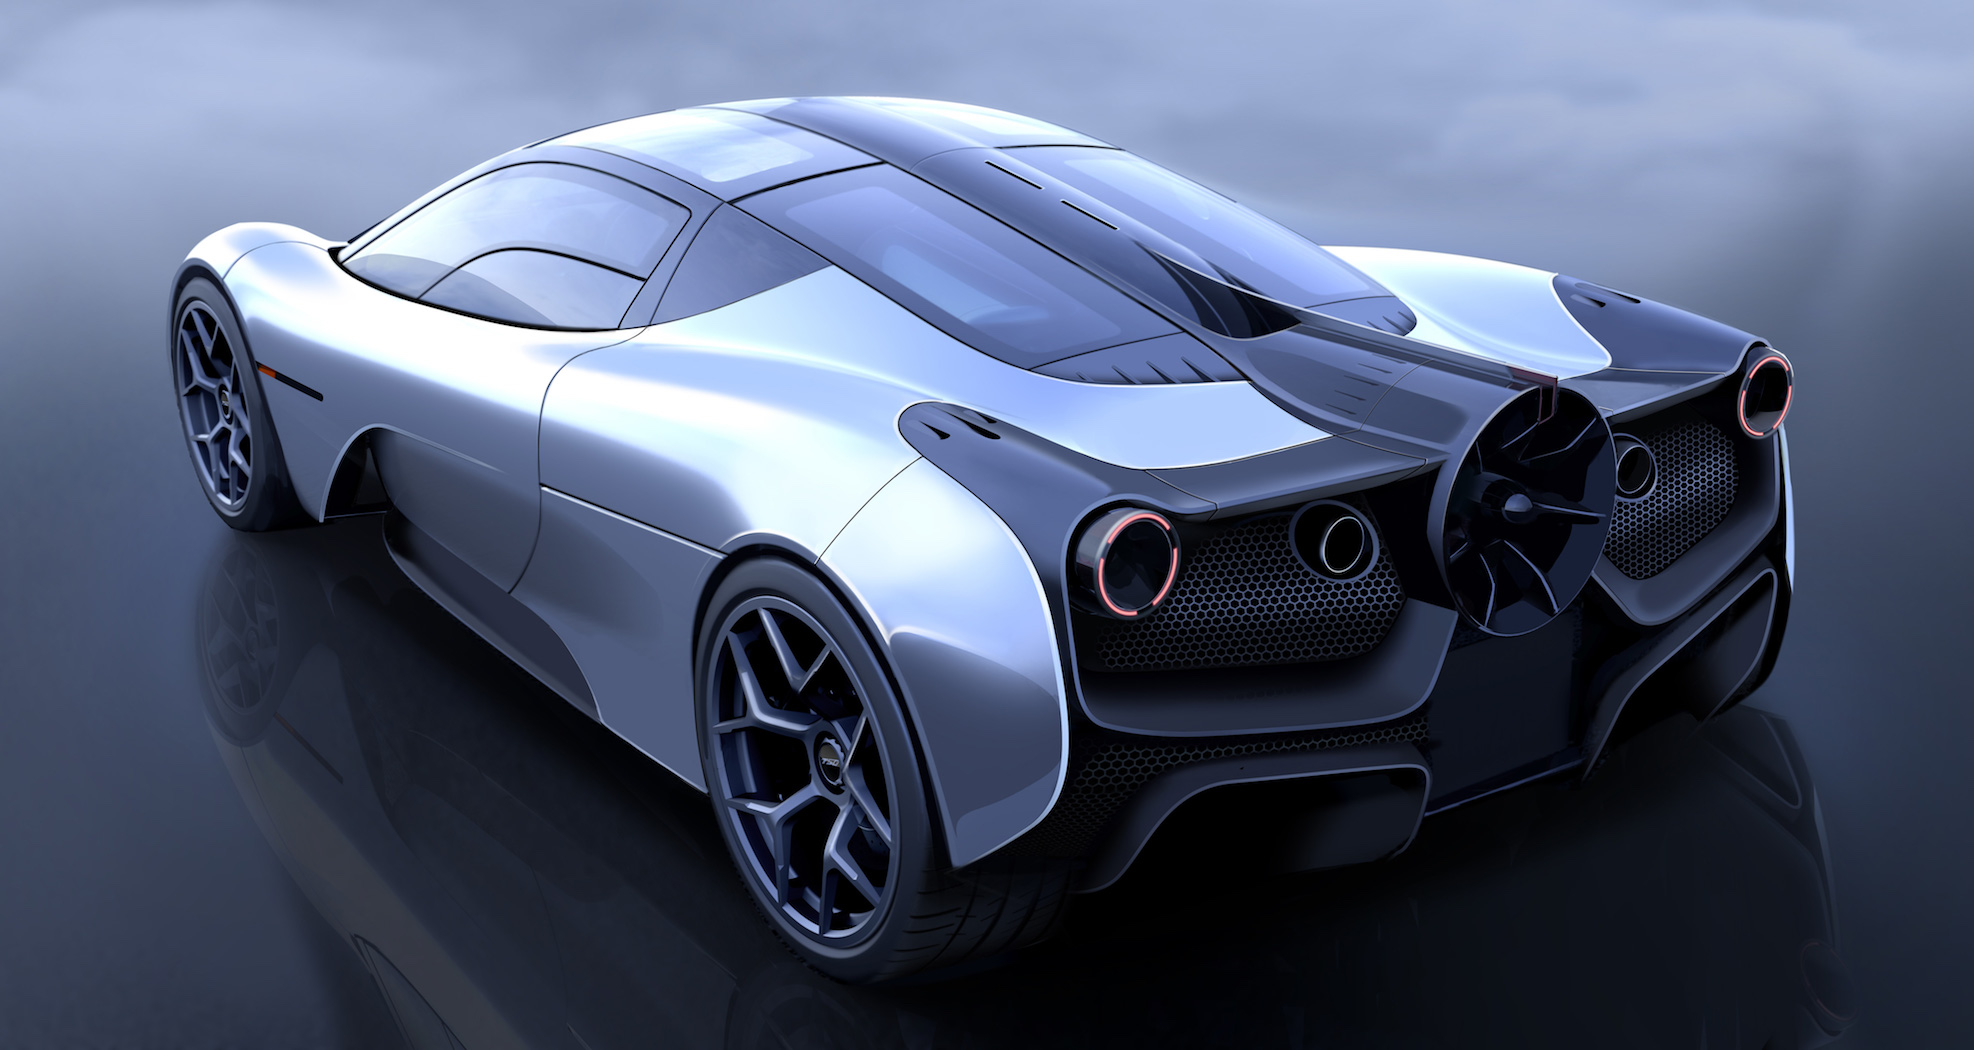 Outrageous V12 At Heart Of GMA T.50 Supercar Revealed